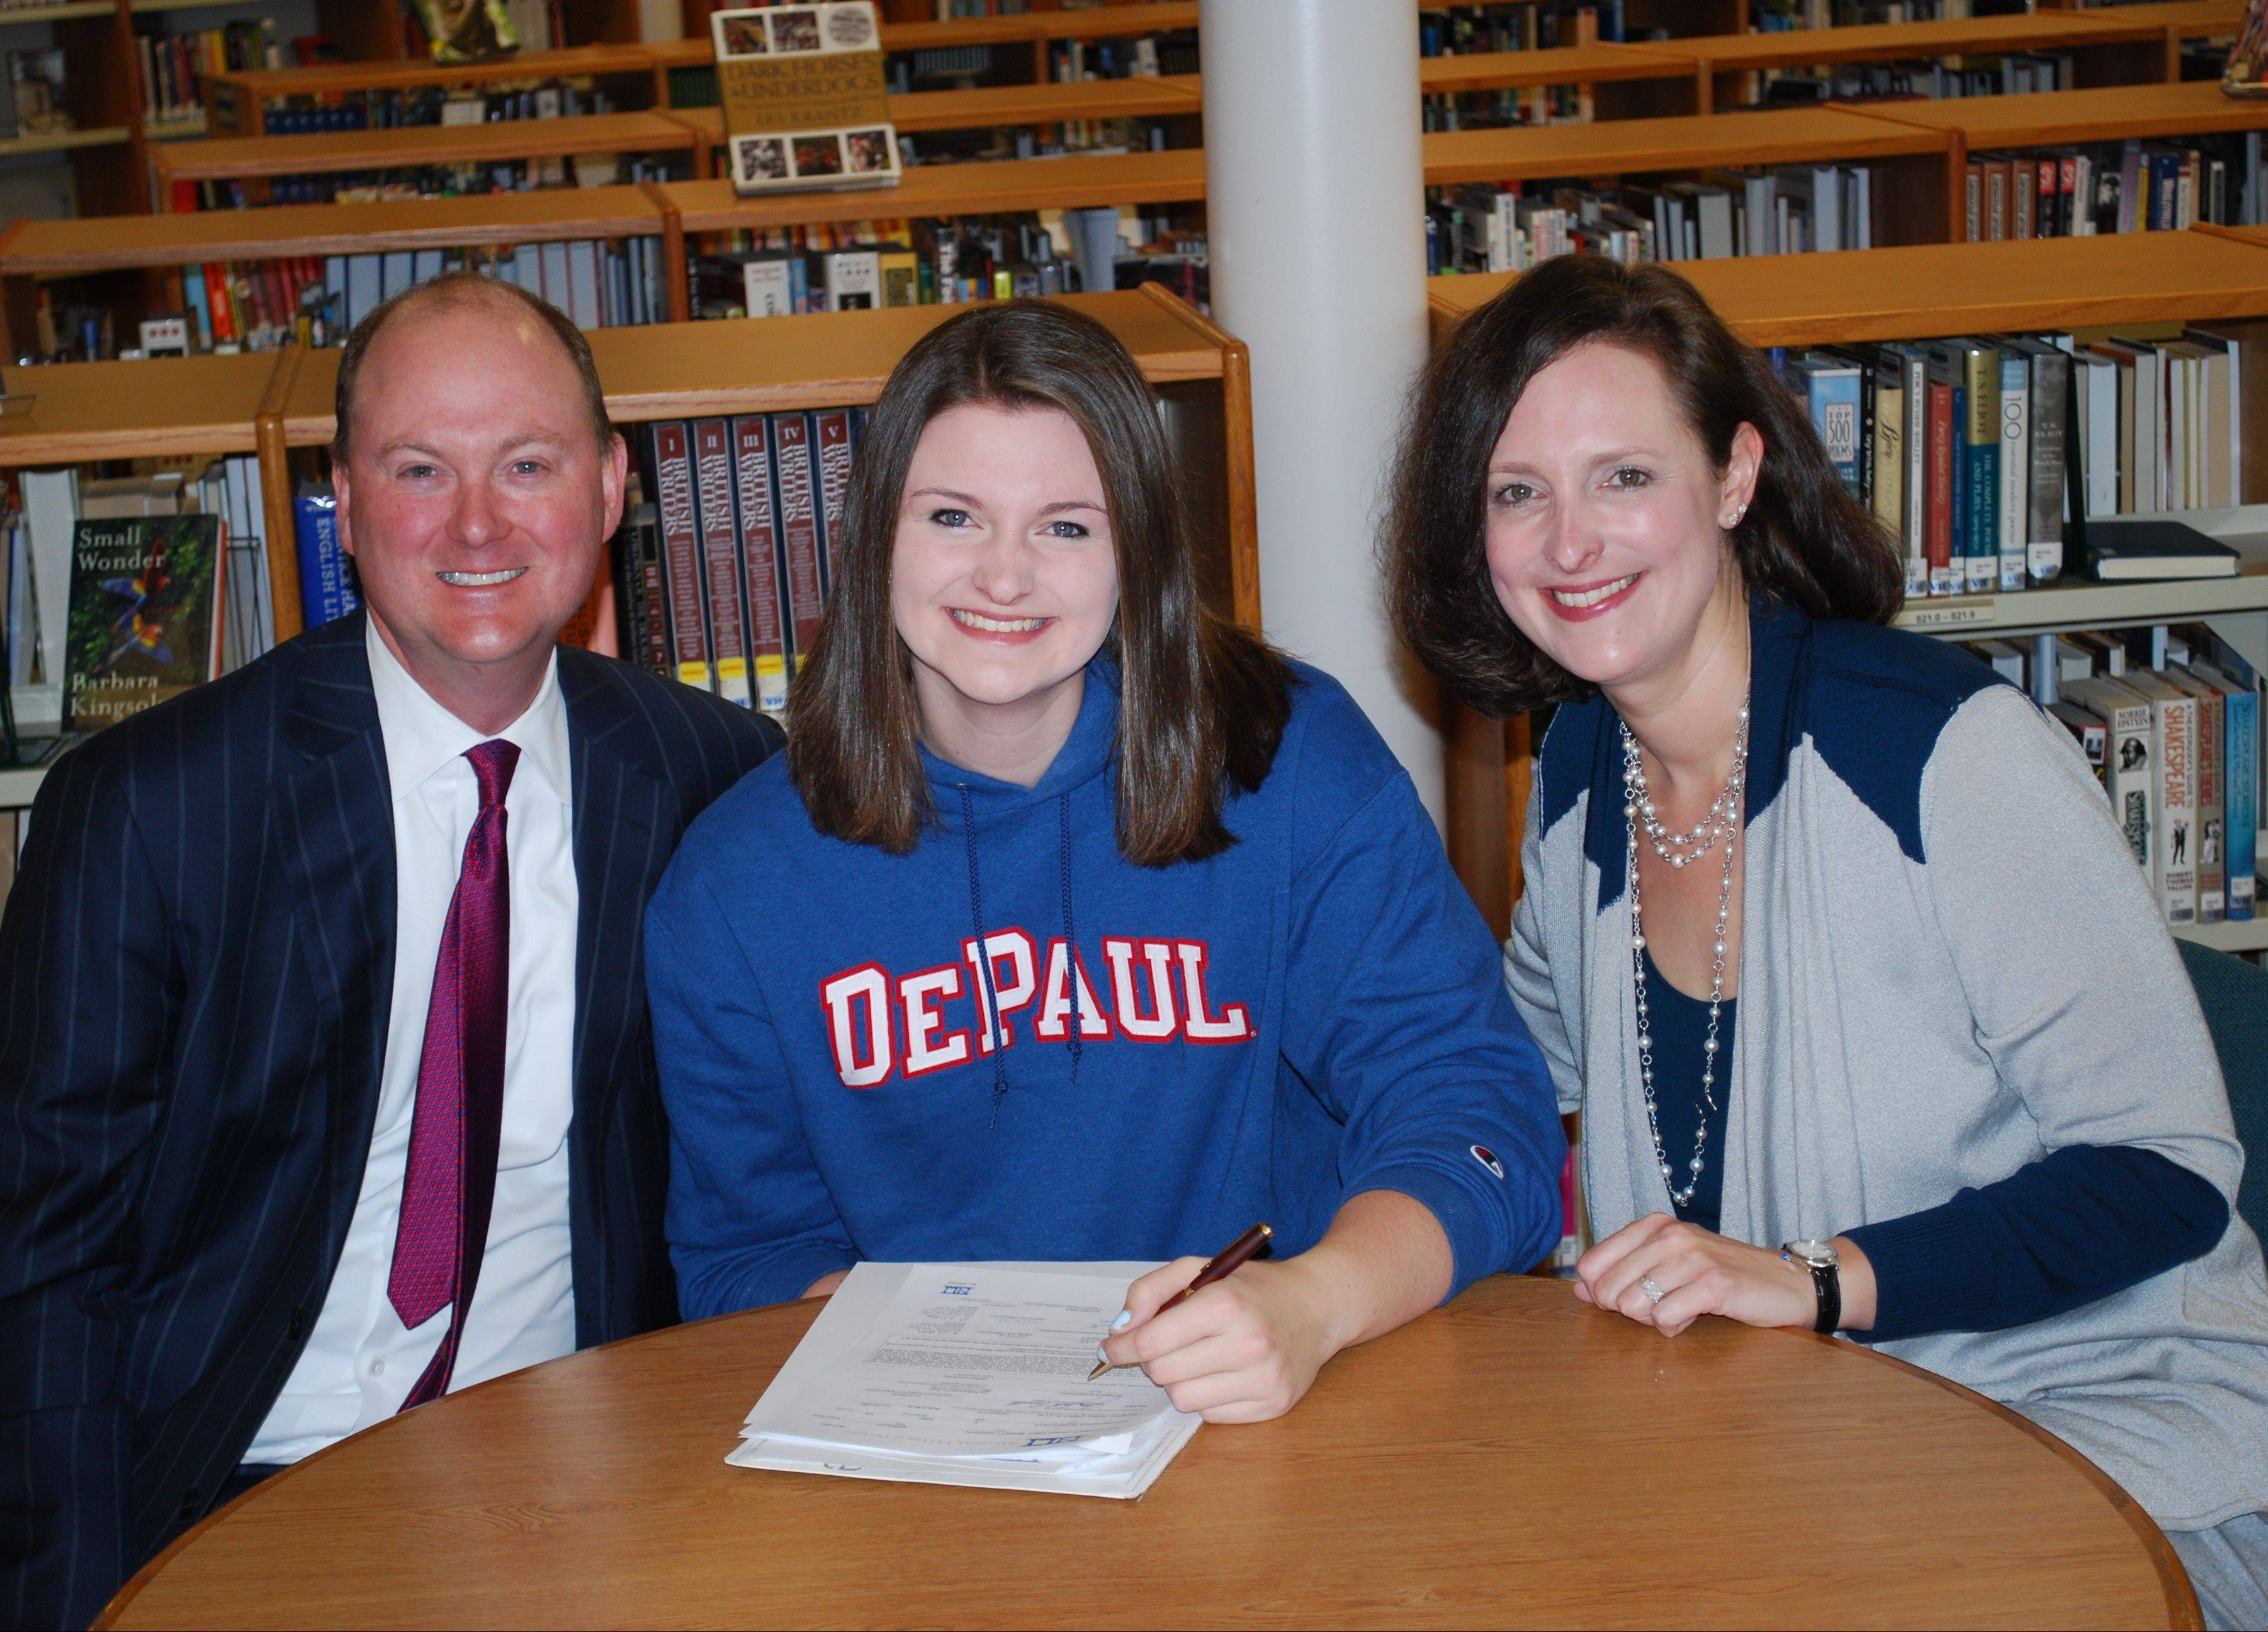 Vernon Hills senior Meri Bennett-Swanson poses with her parents, Shane Swanson and Susan Bennett, after signing her national letter of intent with DePaul University on Wednesday.